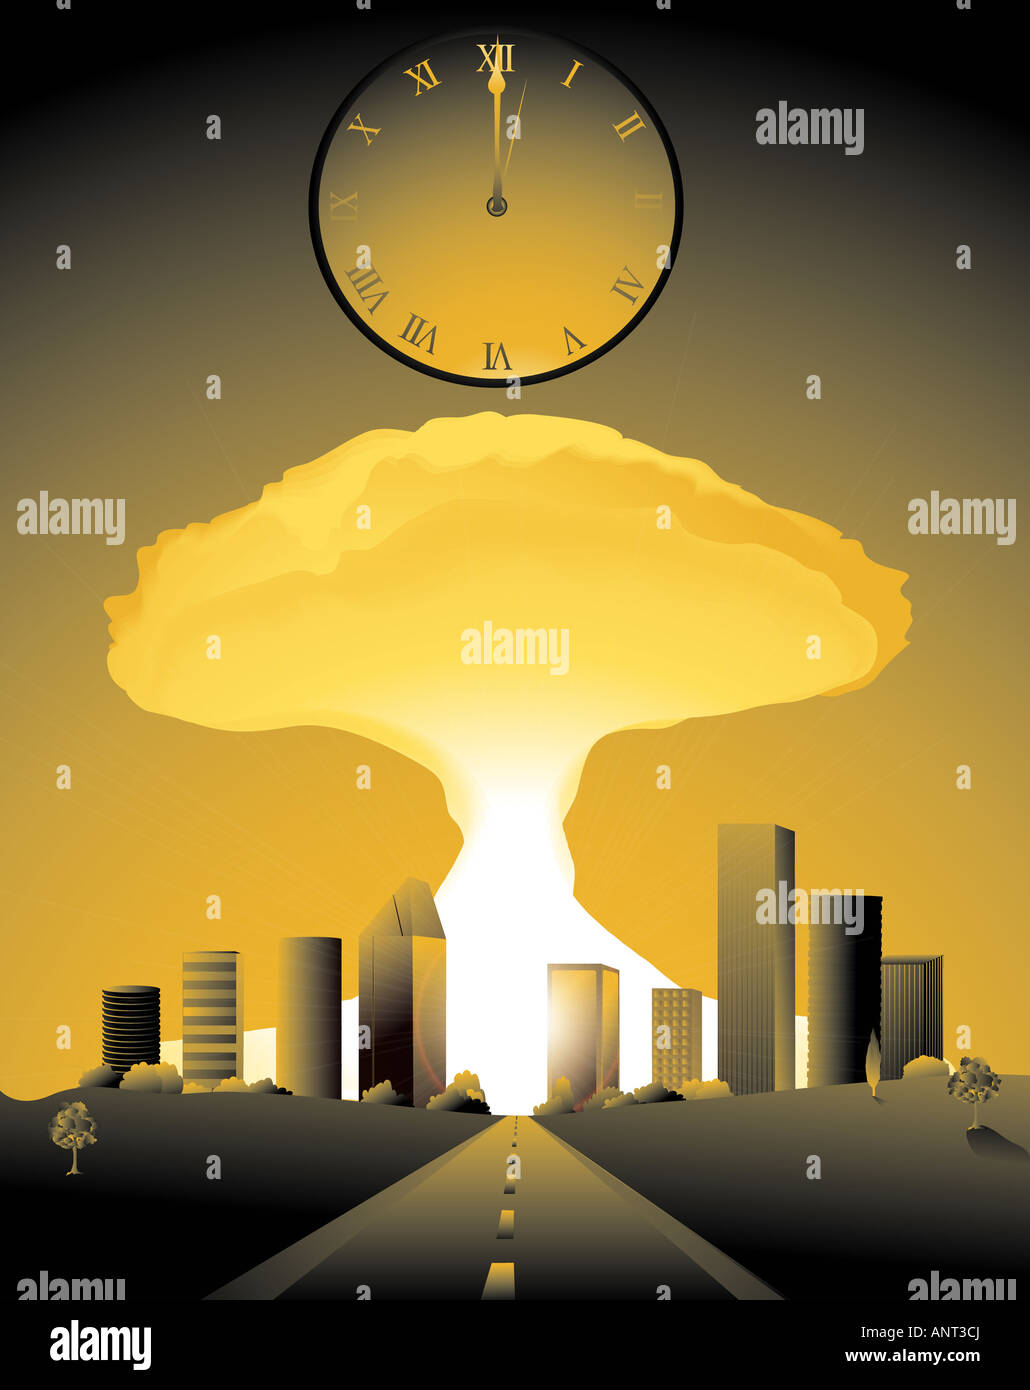 doomsday with a nuclear bomb going off in a city and clock striking midnight - Stock Image